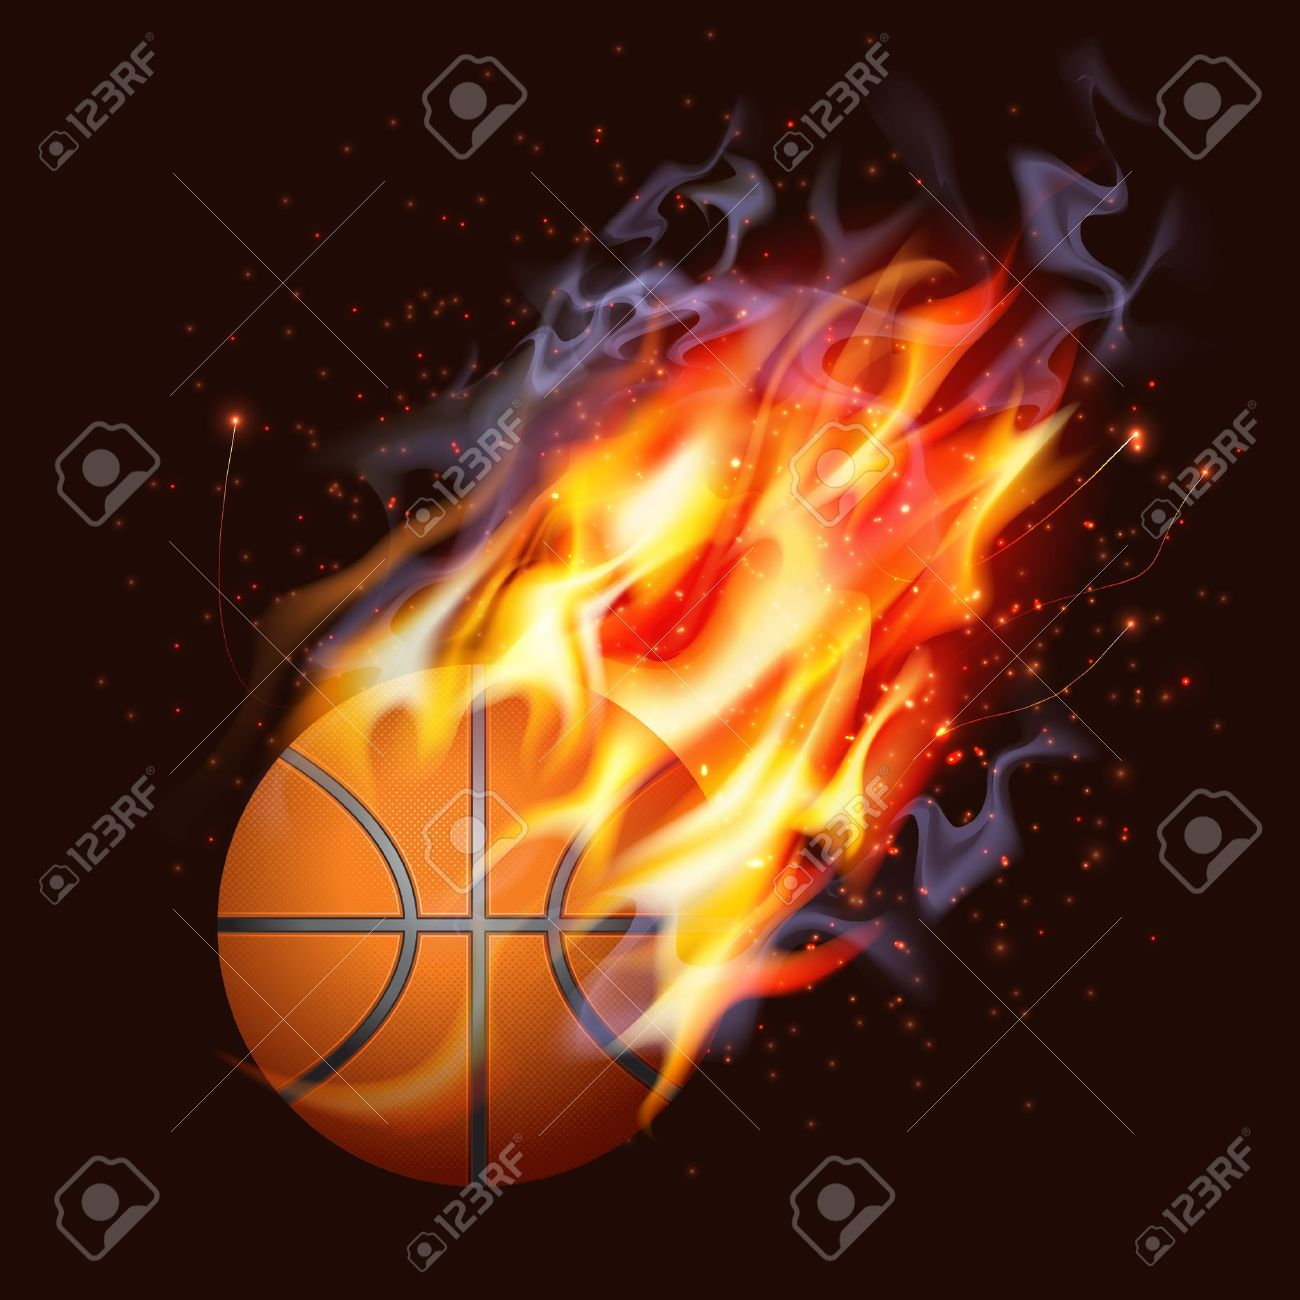 Basketball Clipart Fire - Free Transparent PNG Download - PNGkey